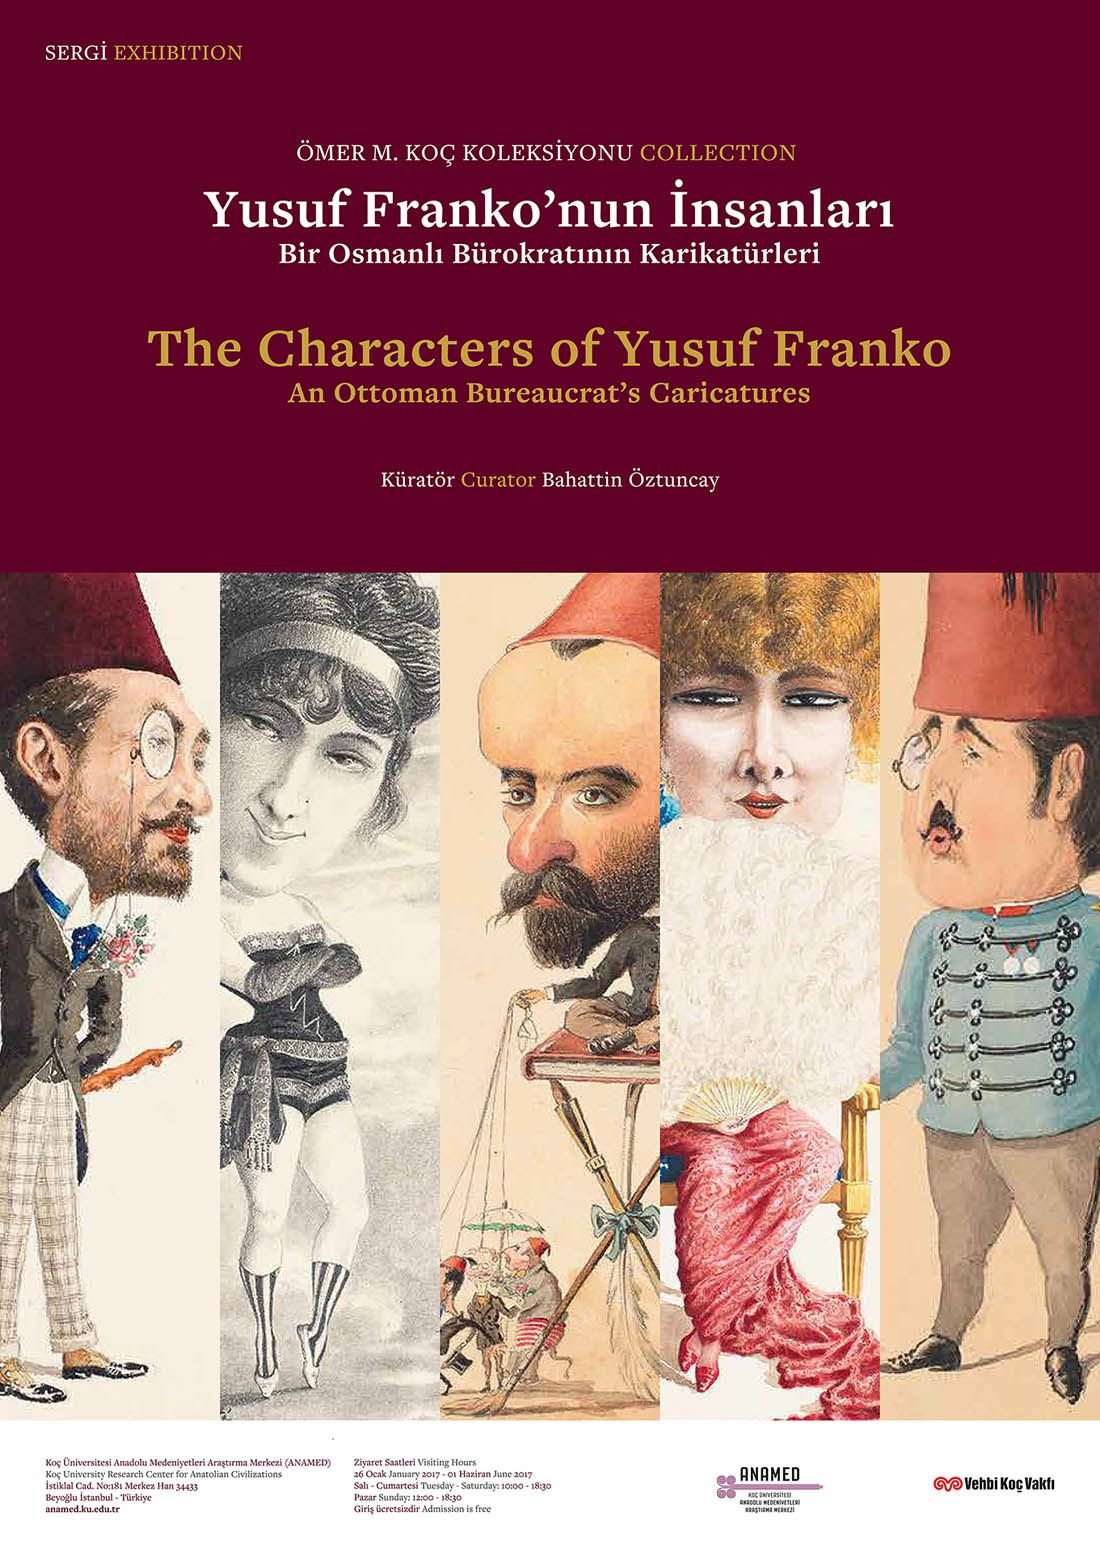 The Characters of Yusuf Franko, exposition actuellement à Istanbul